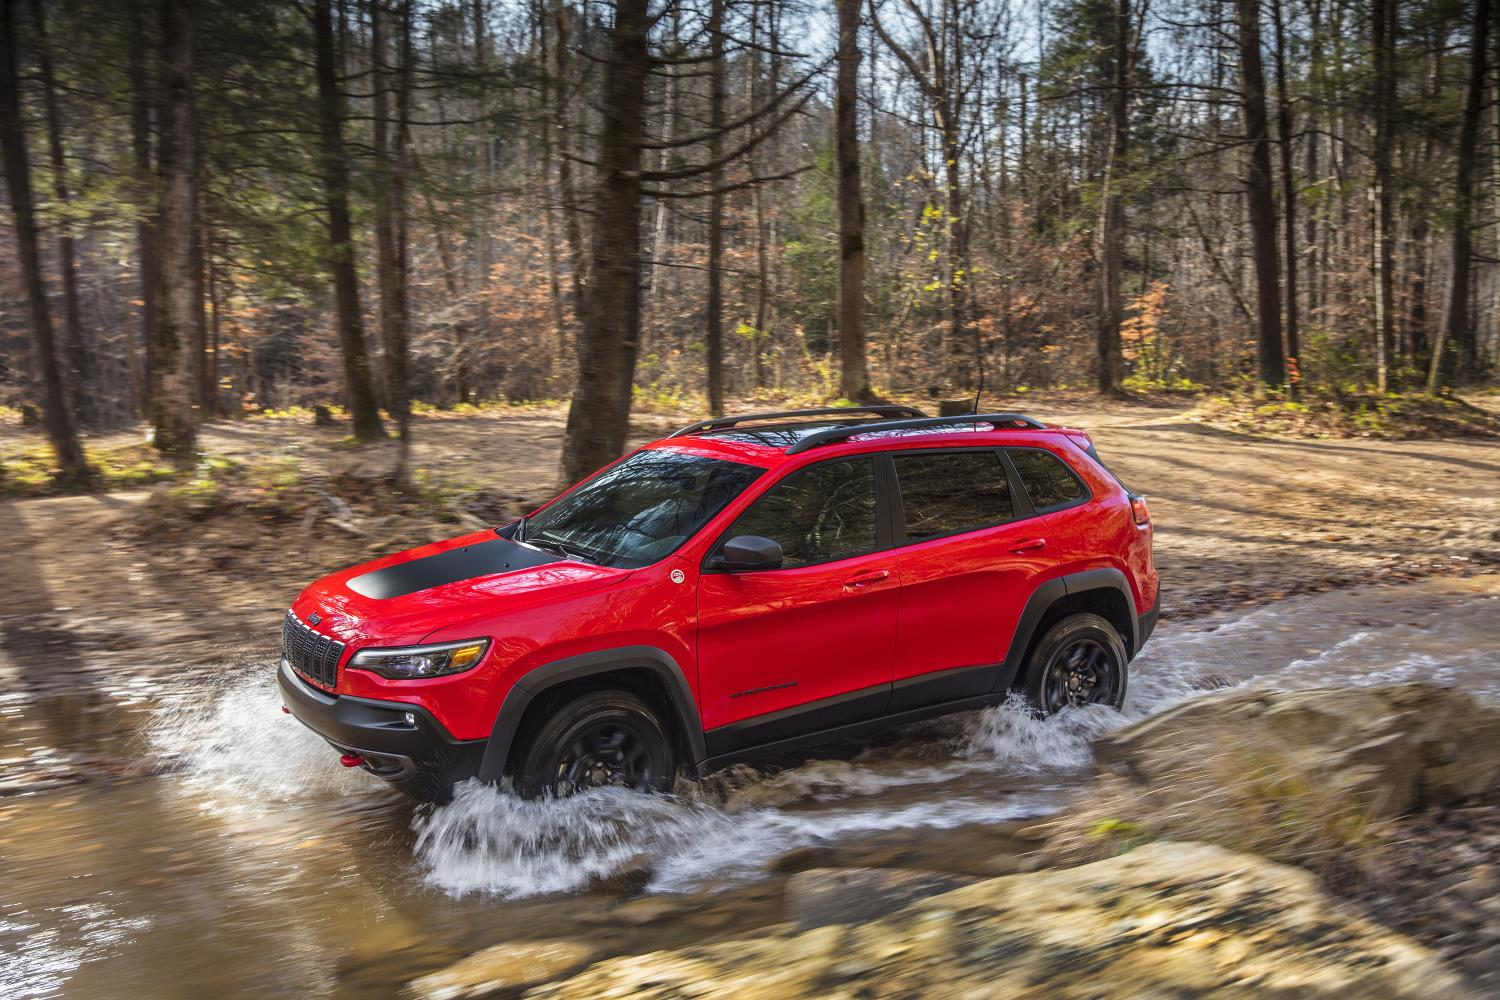 Jeep Cherokee, one of Jeep's top selling vehicles in calendar year 2017